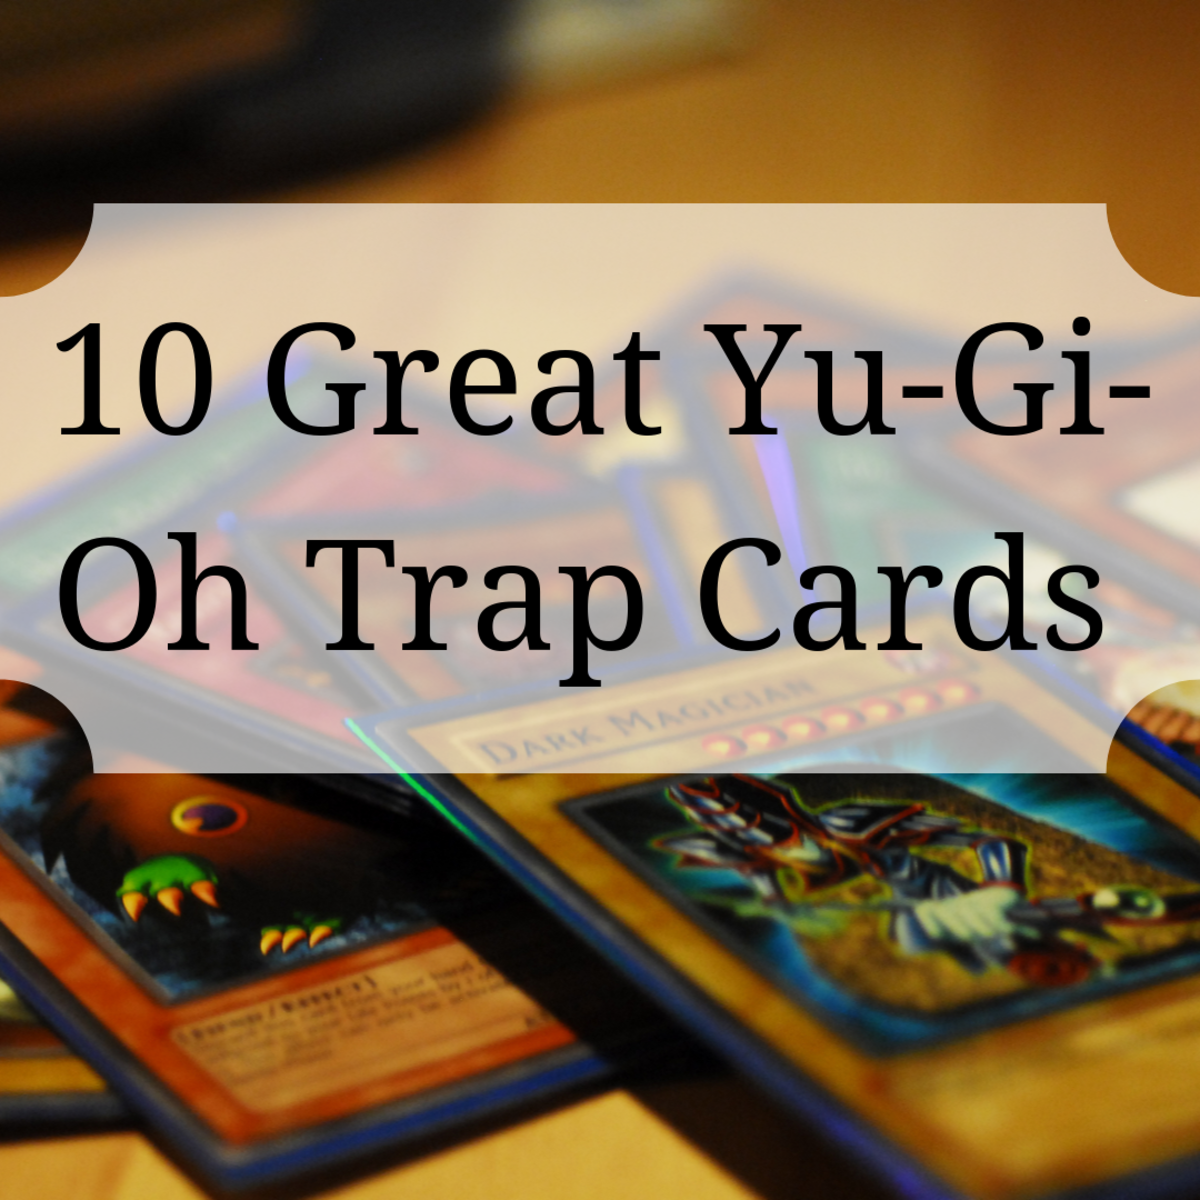 Learn about some great trap cards to use in your Yu-Gi-Oh deck!